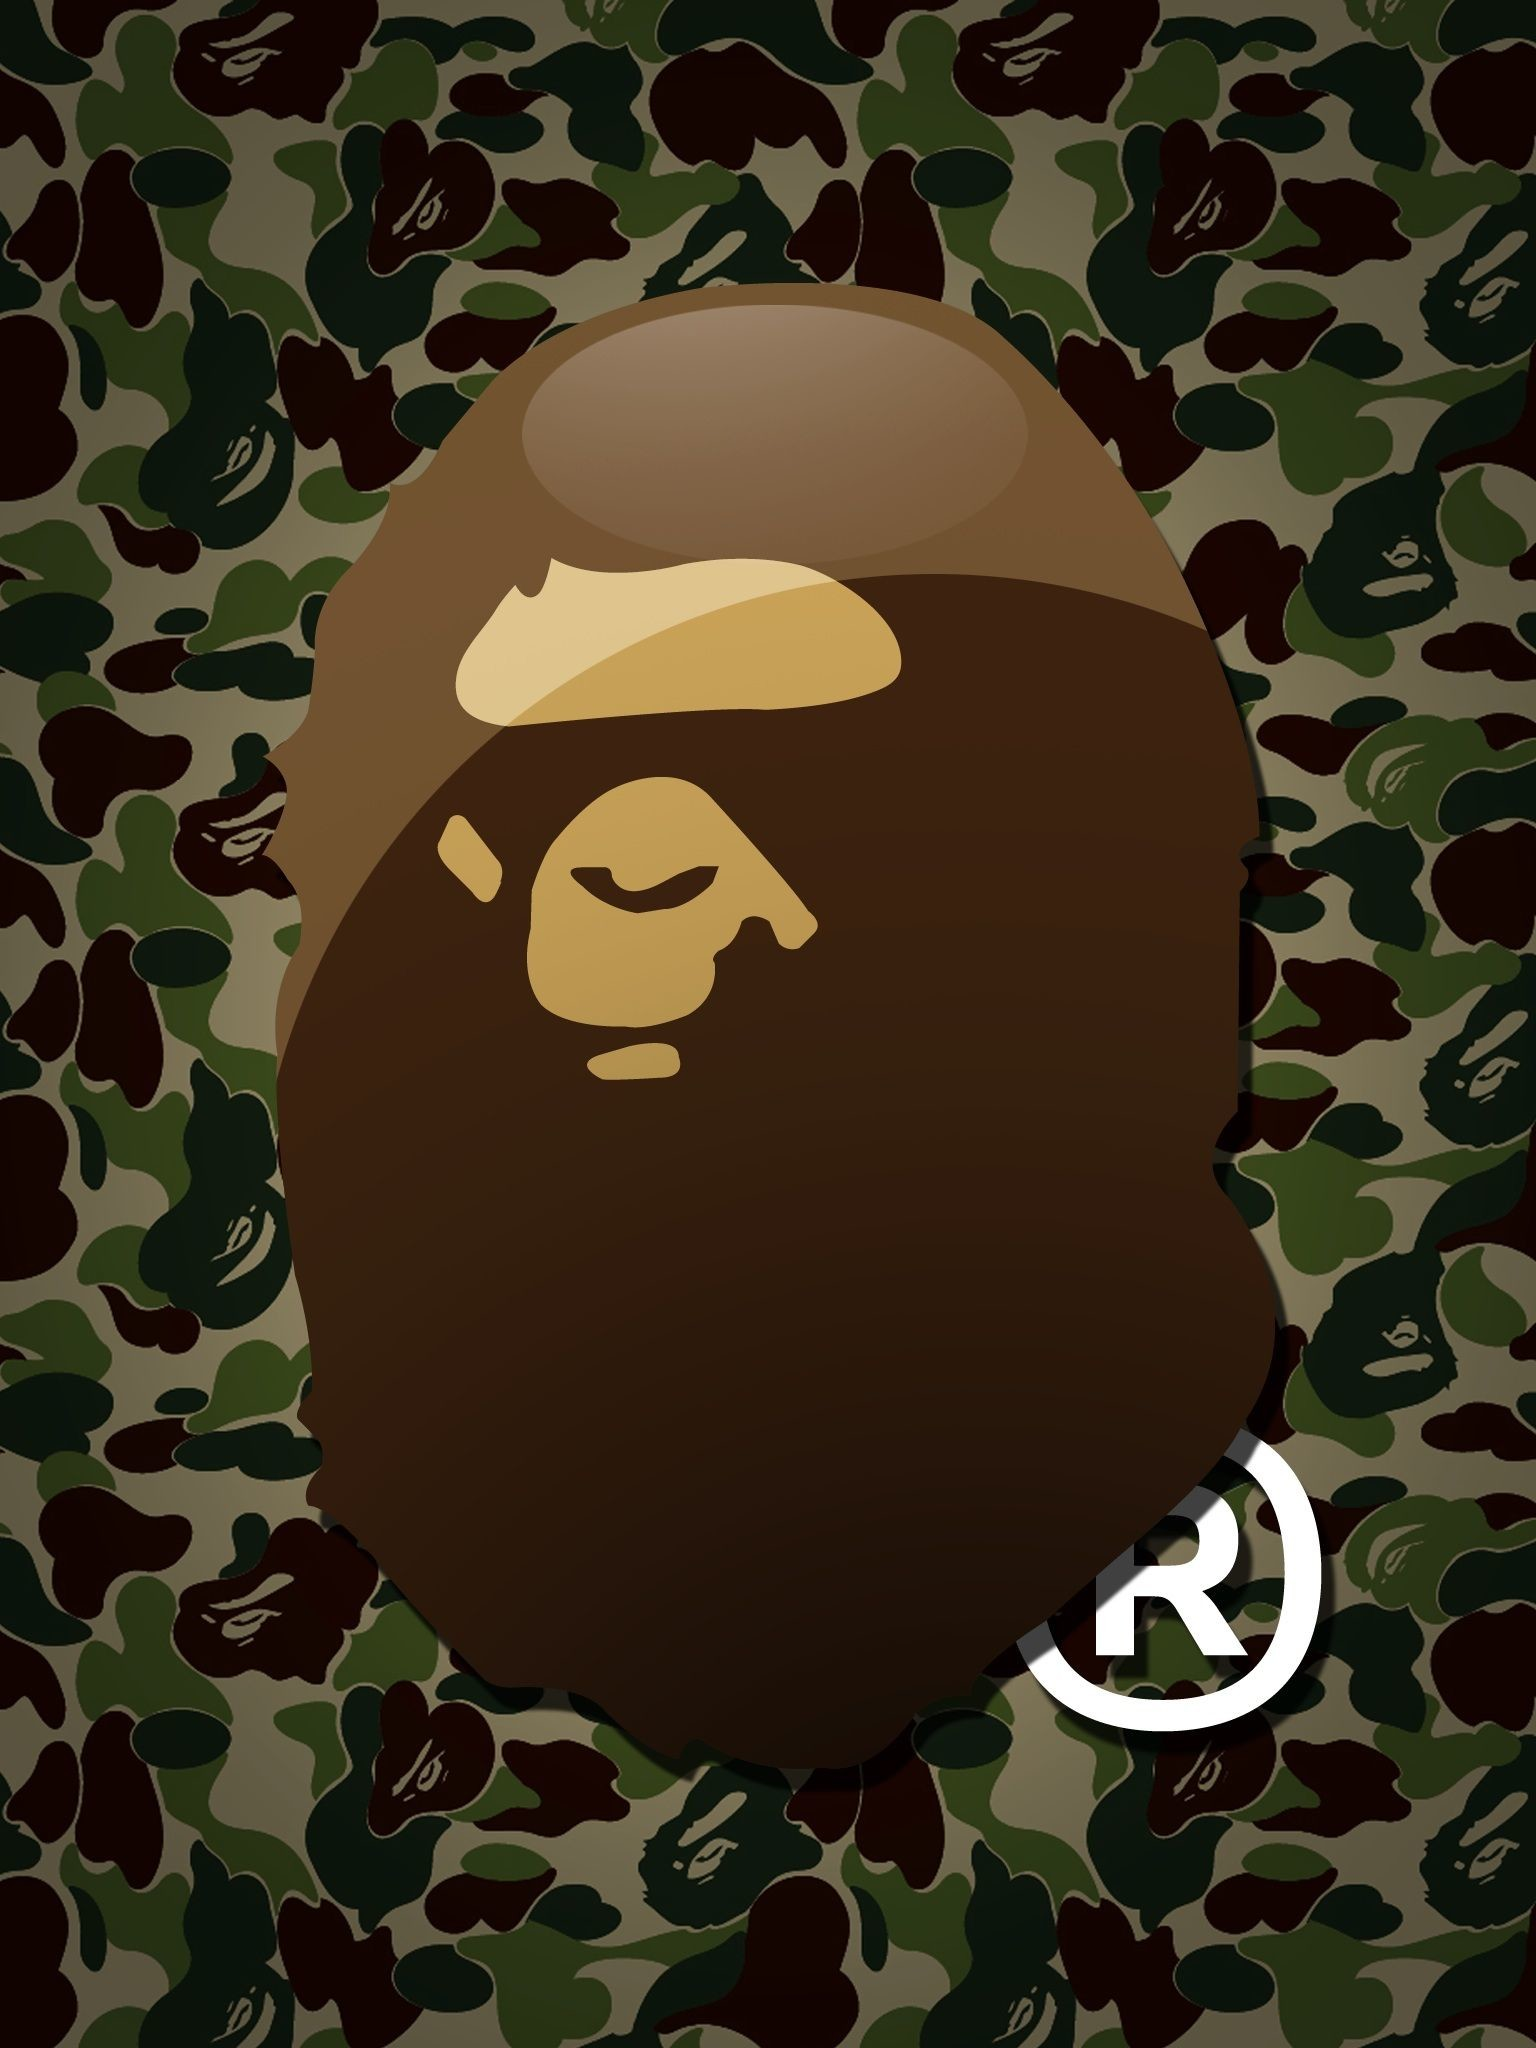 Res: 1536x2048, A Bathing Ape.